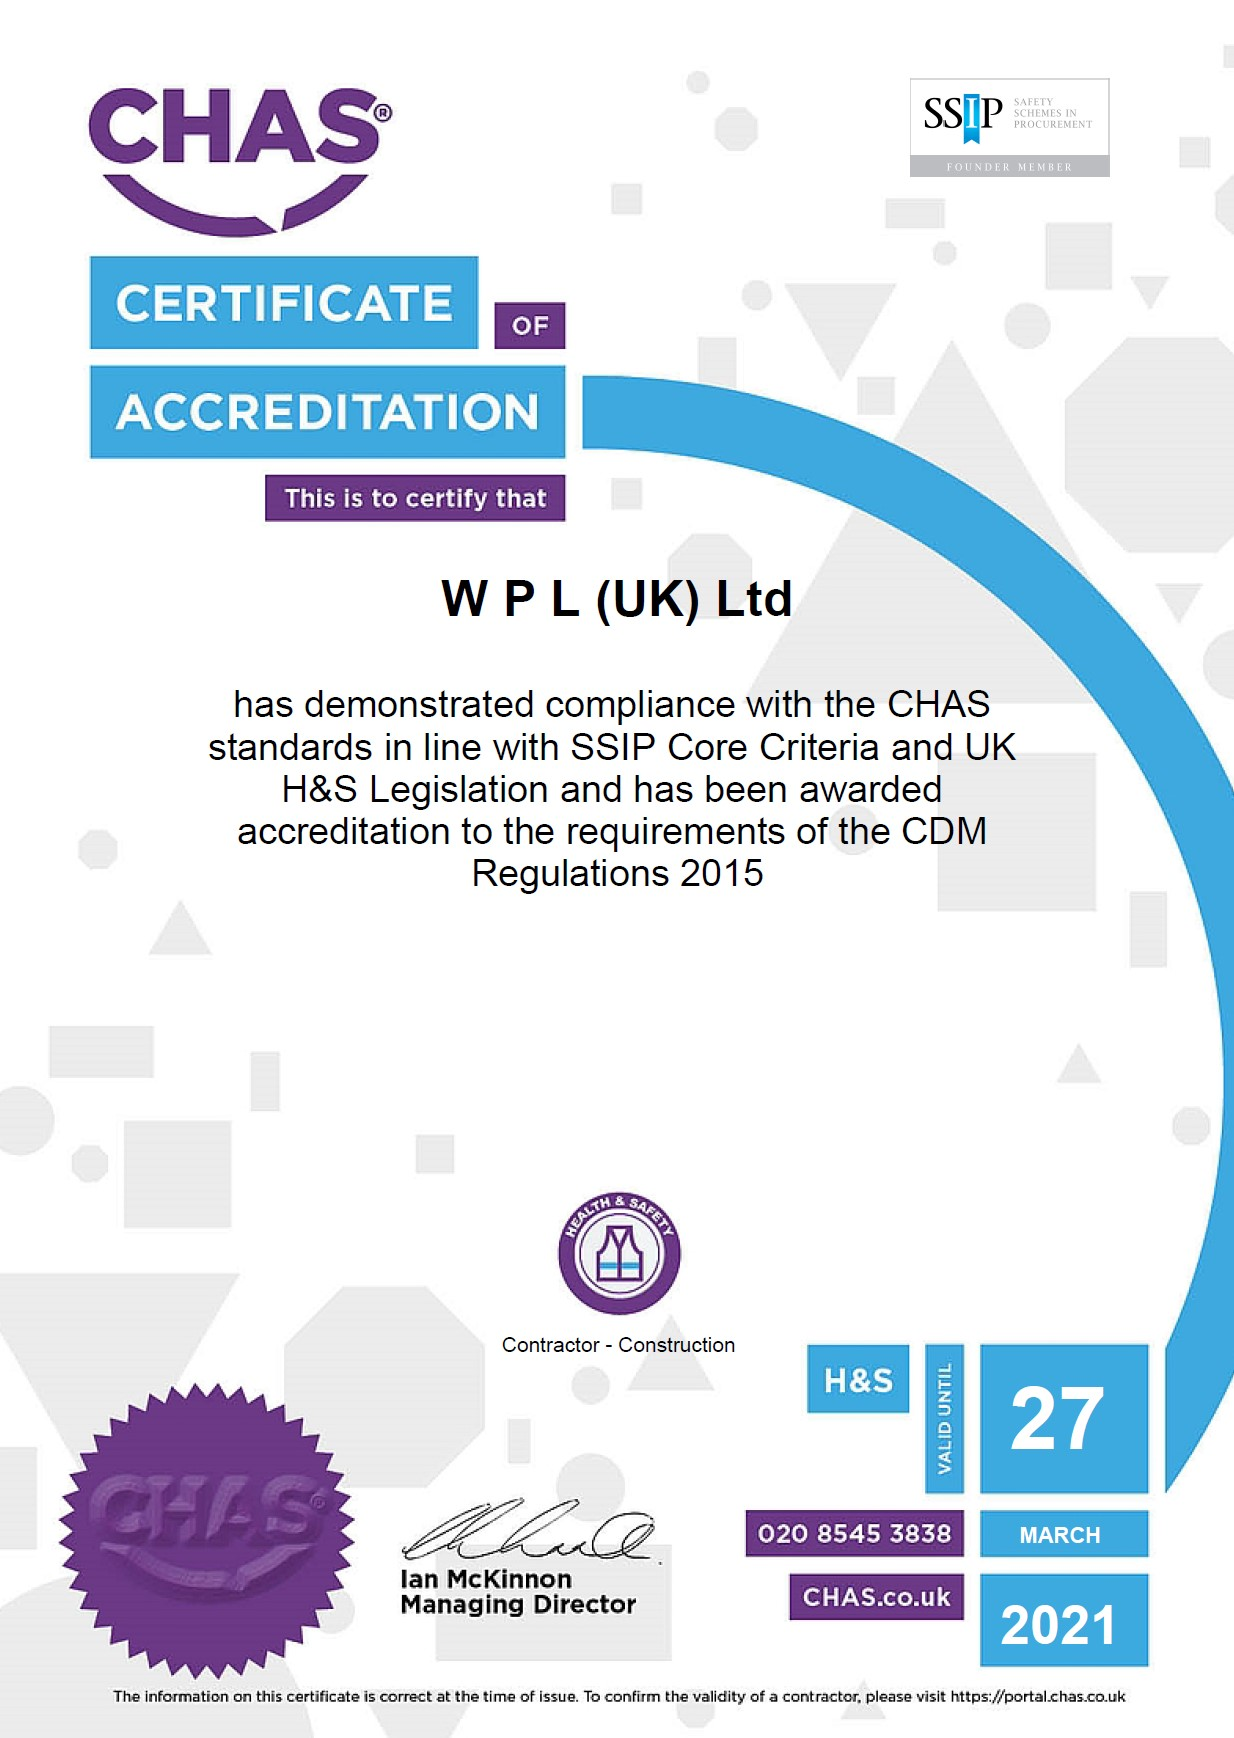 WPLUK CHAS Certificate to 27th March 2021